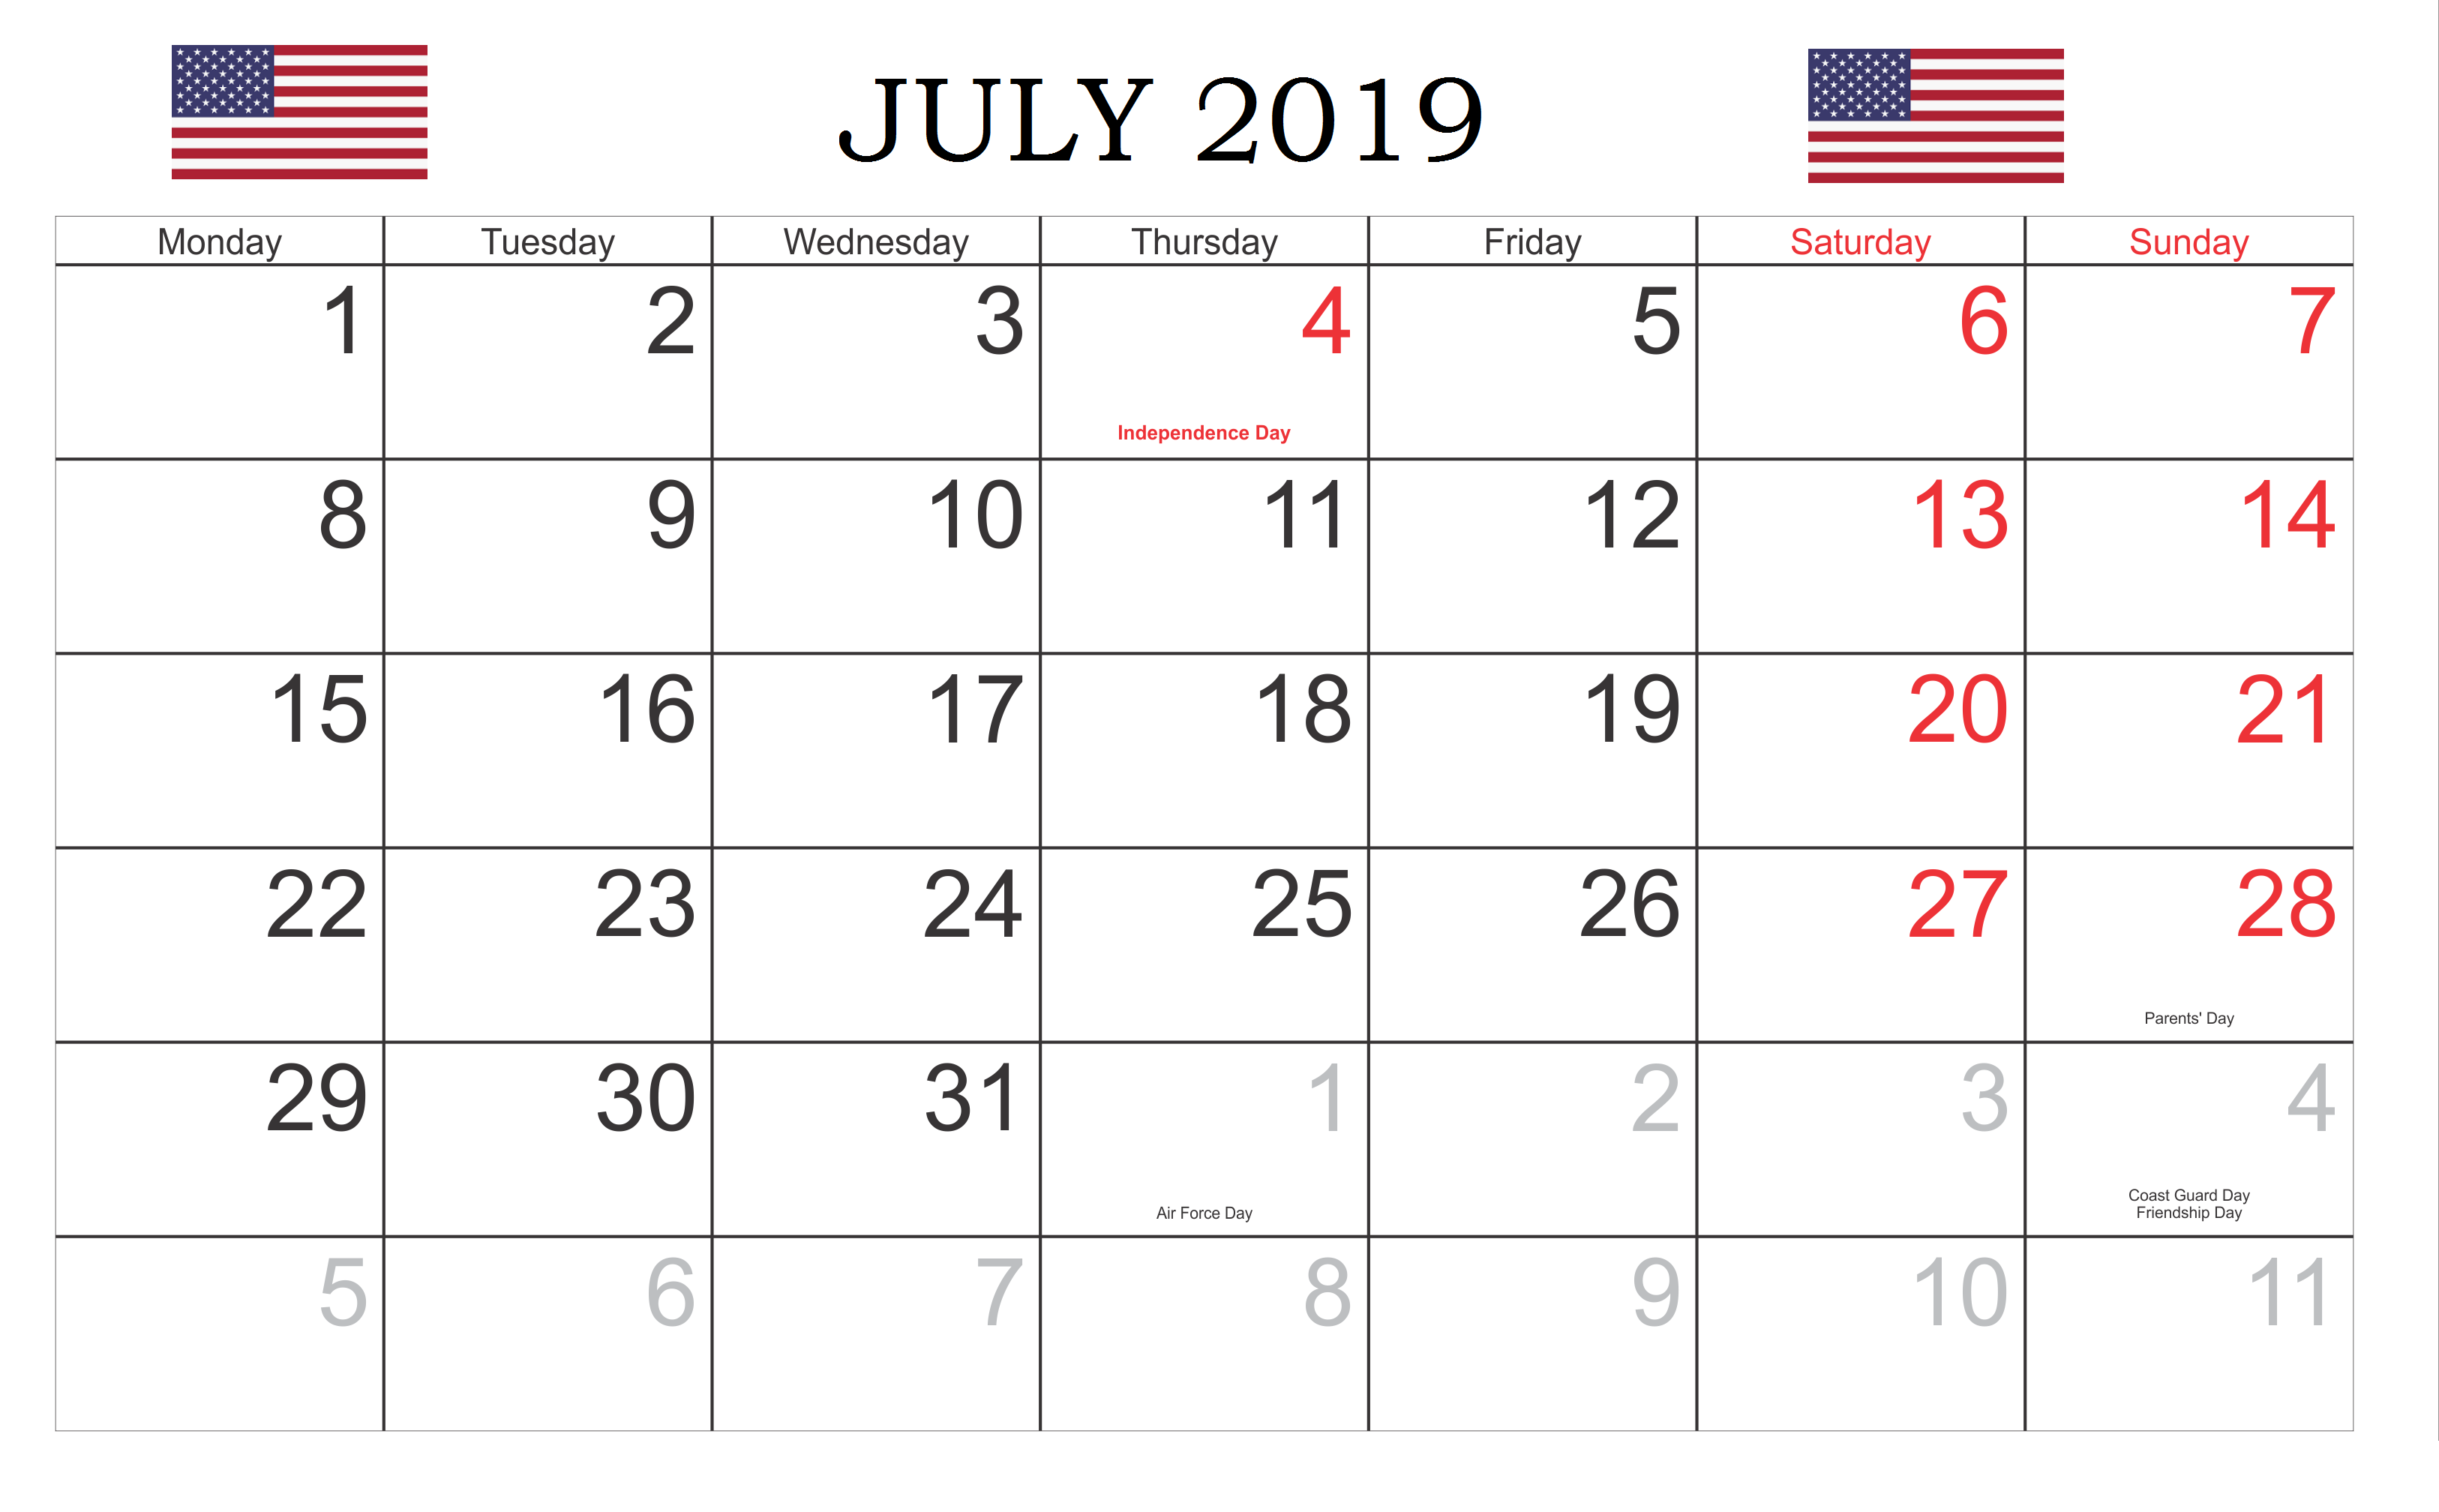 The United States Holidays July 2019